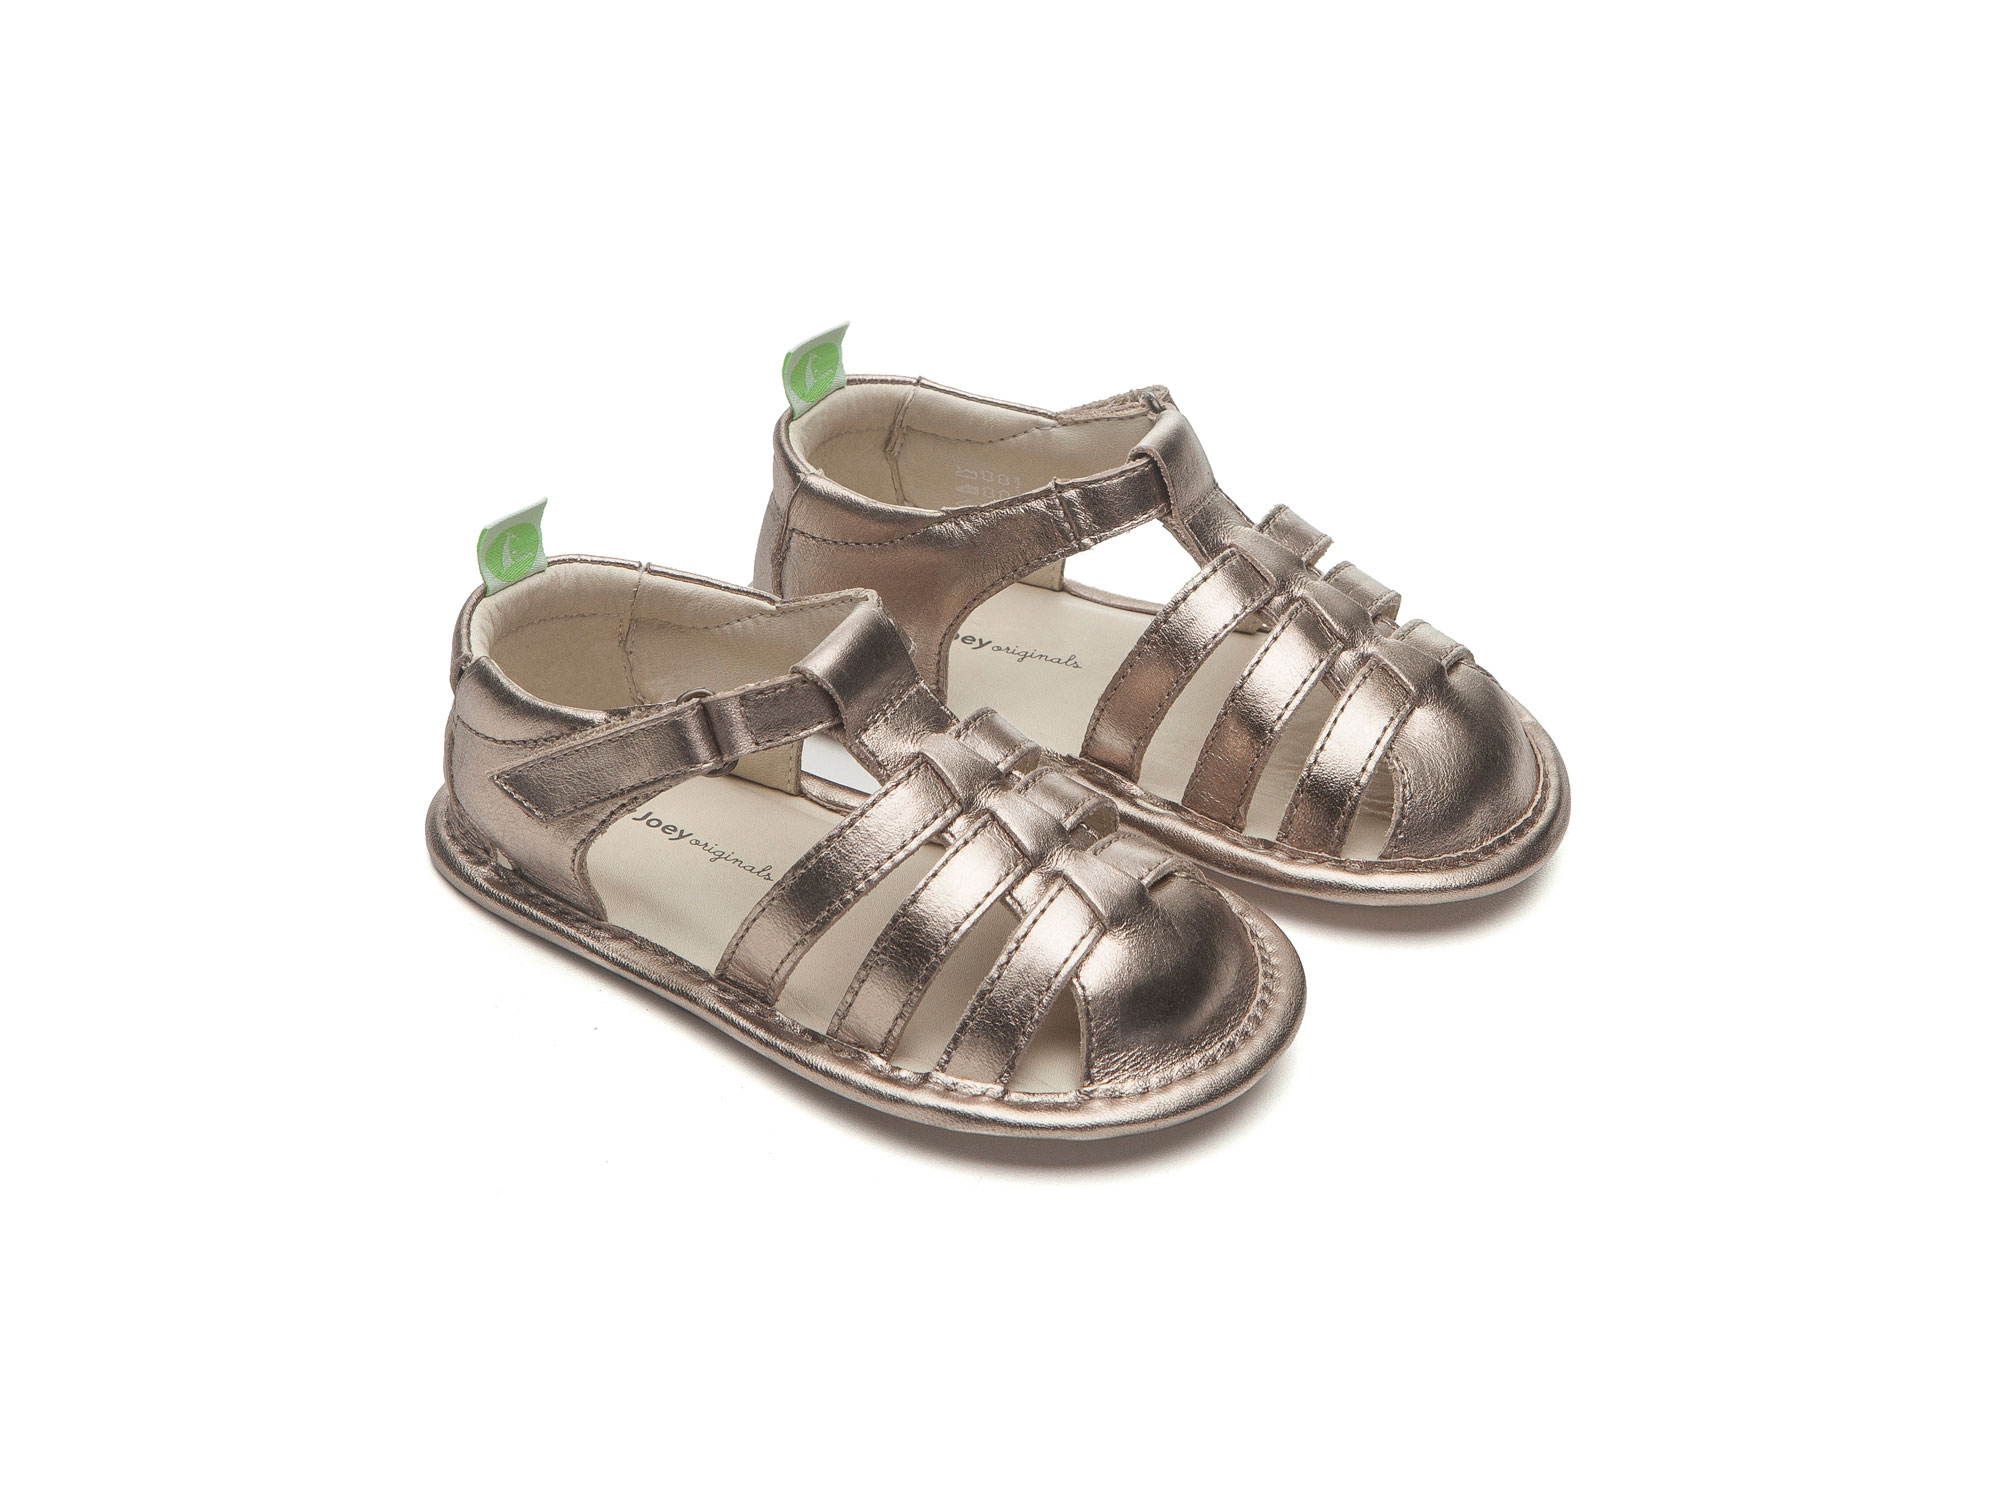 Sandal Minty Gold Sparkle  Baby for ages 0 to 2 years - 0